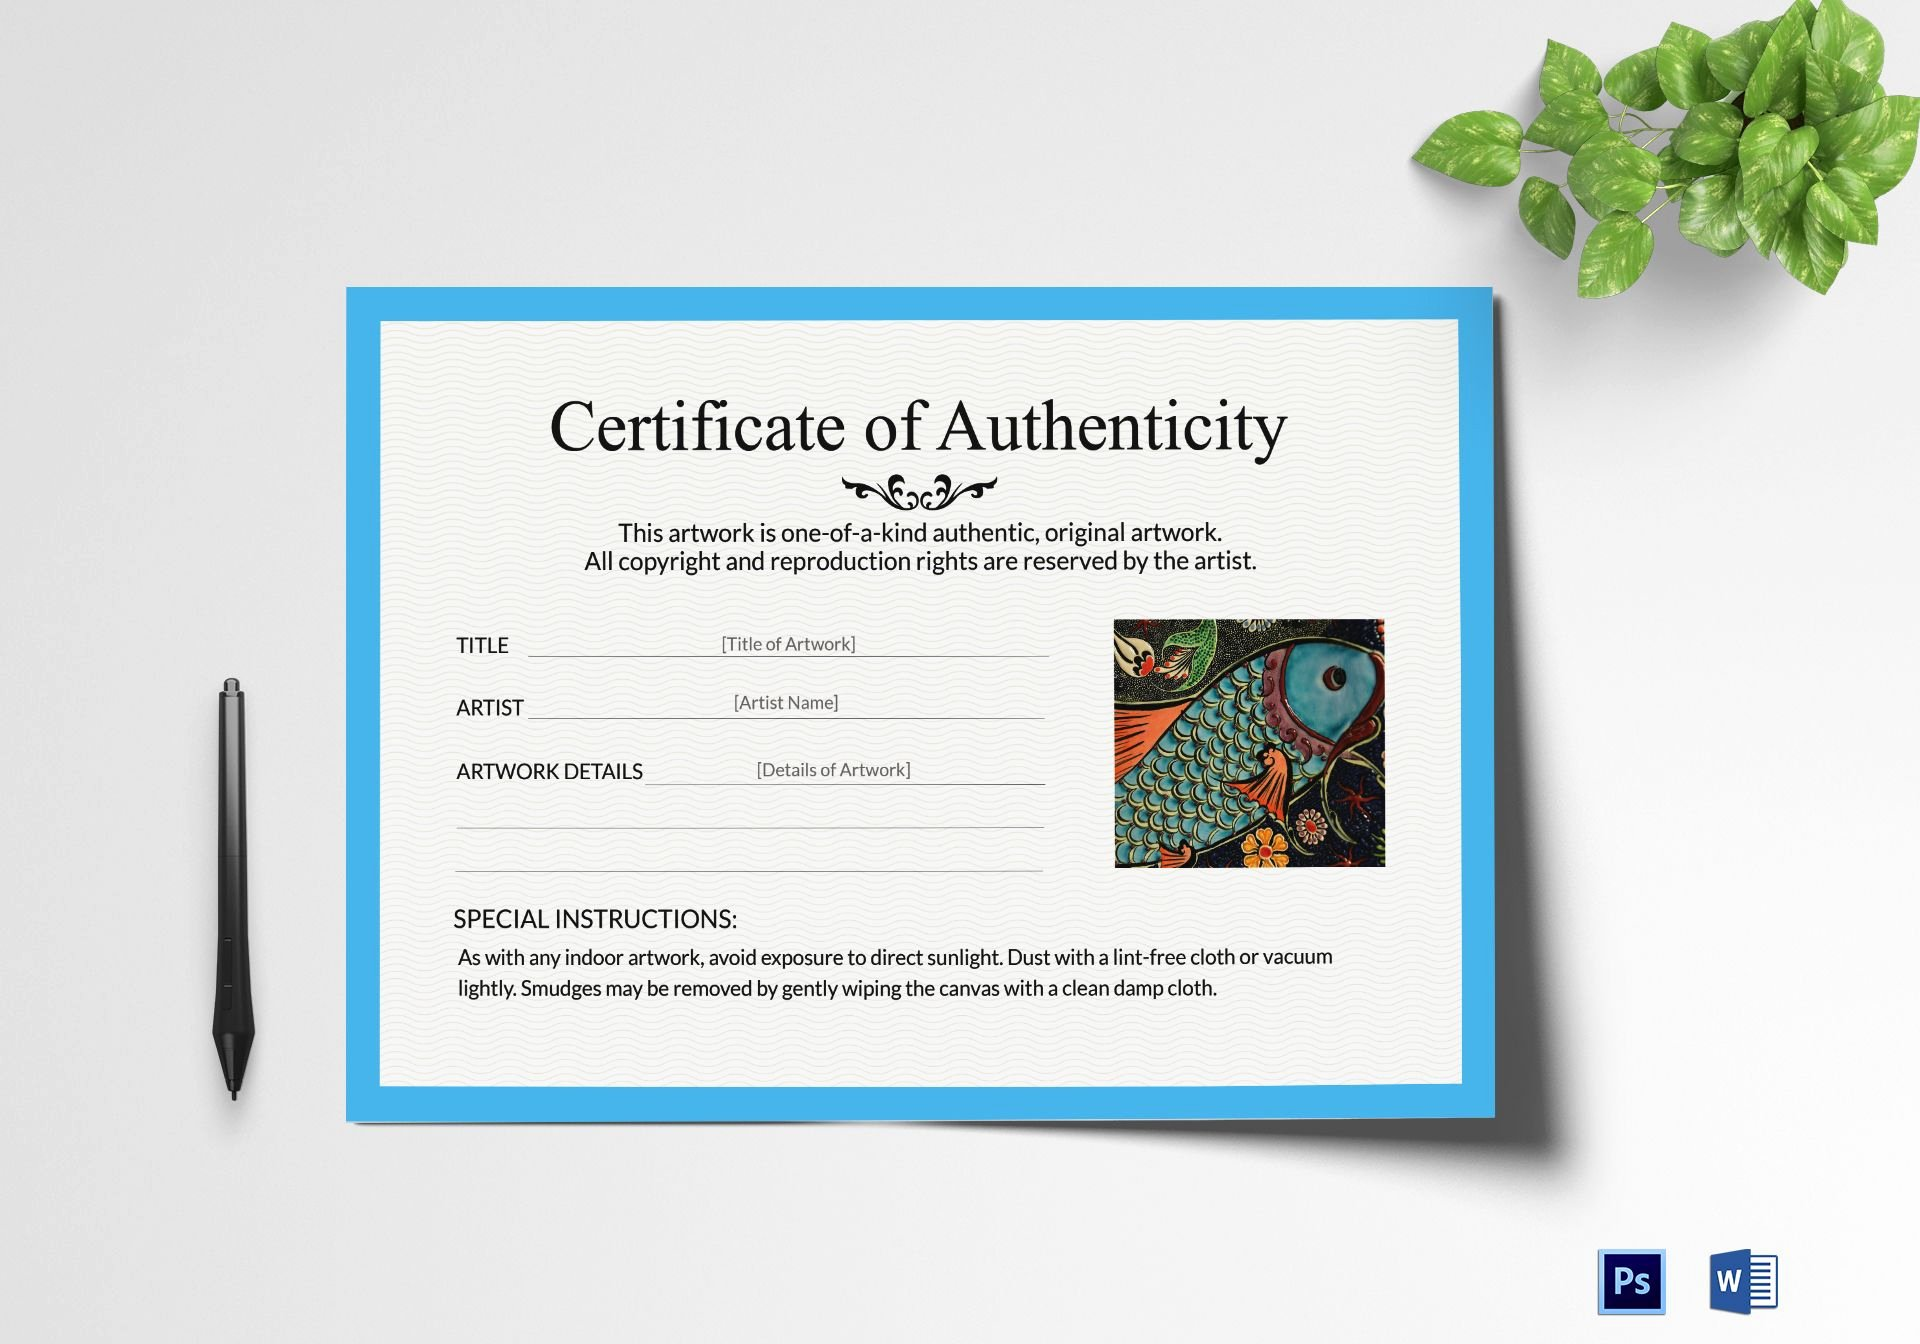 Artwork Certificate Of Authenticity Template Inspirational Artwork Authenticity Certificate Design Template In Psd Word